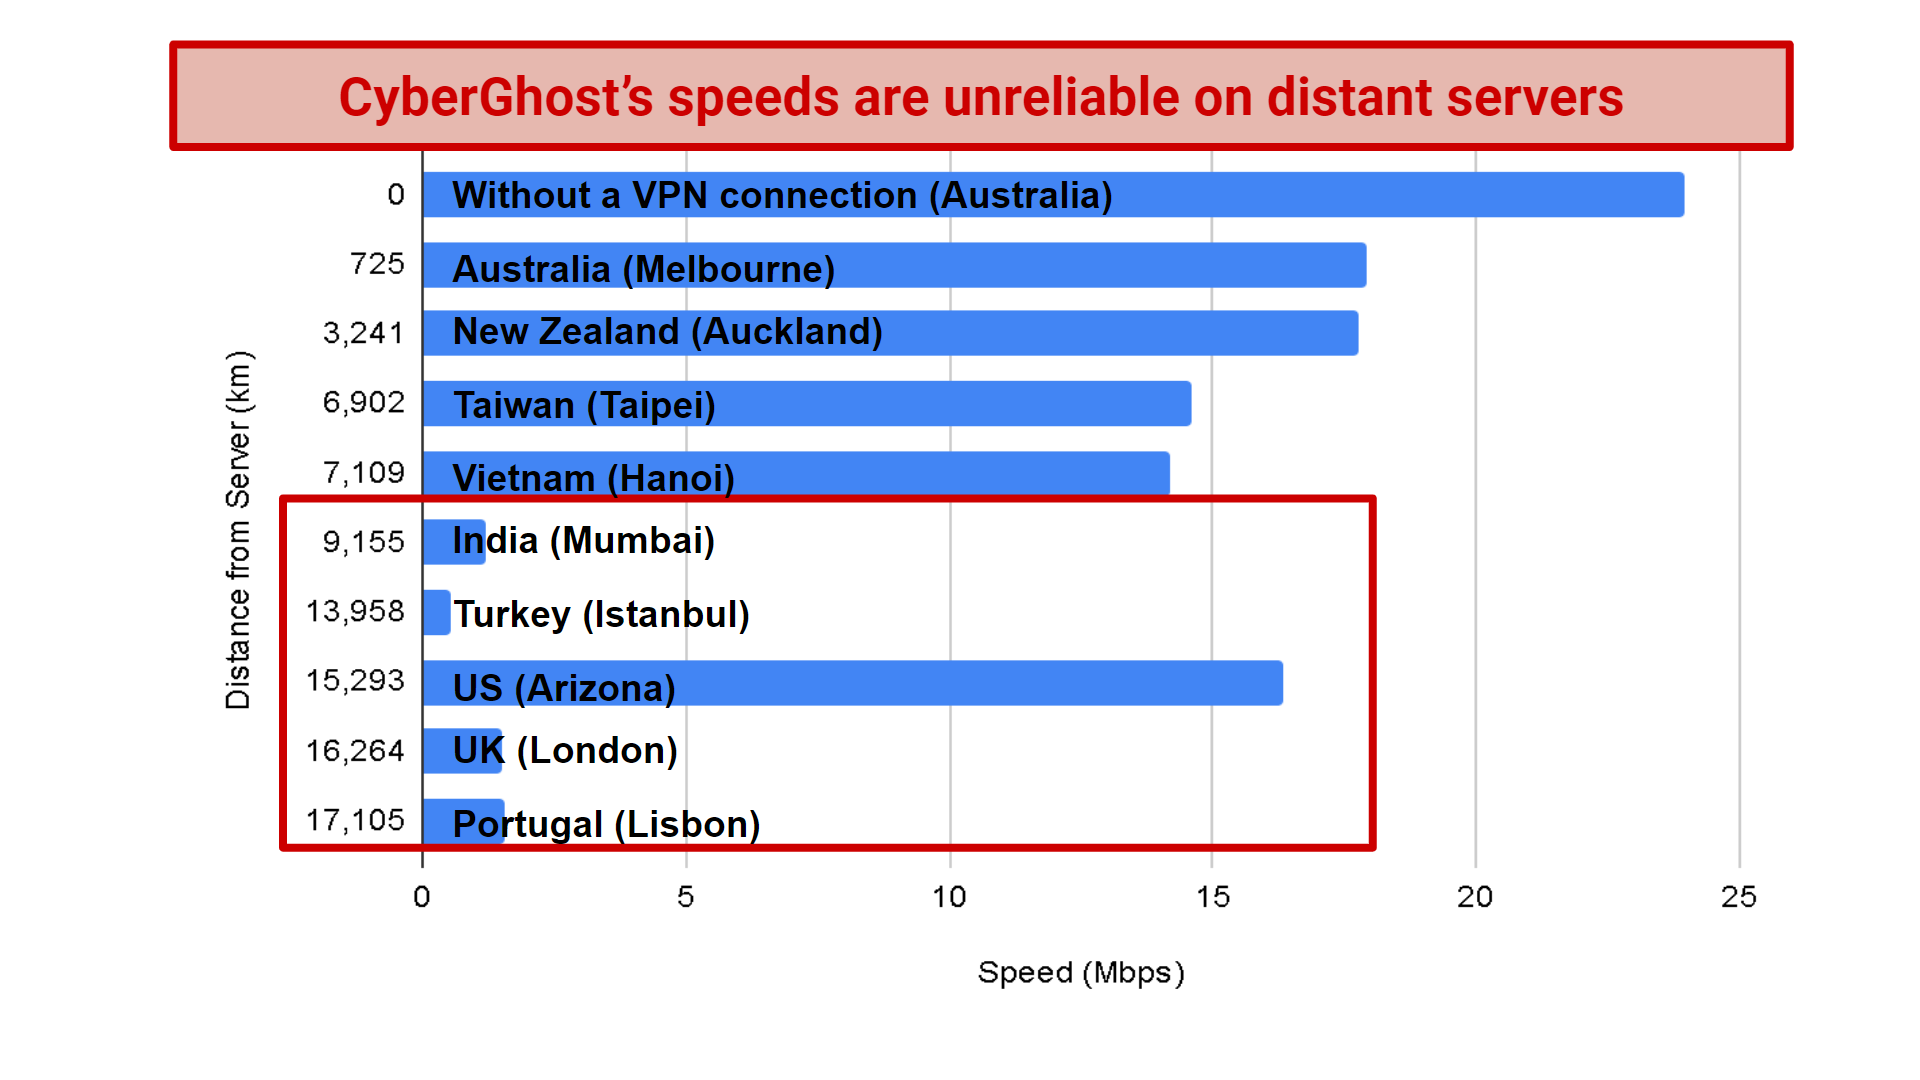 A graph showing the speed test results of CyberGhost's international servers.